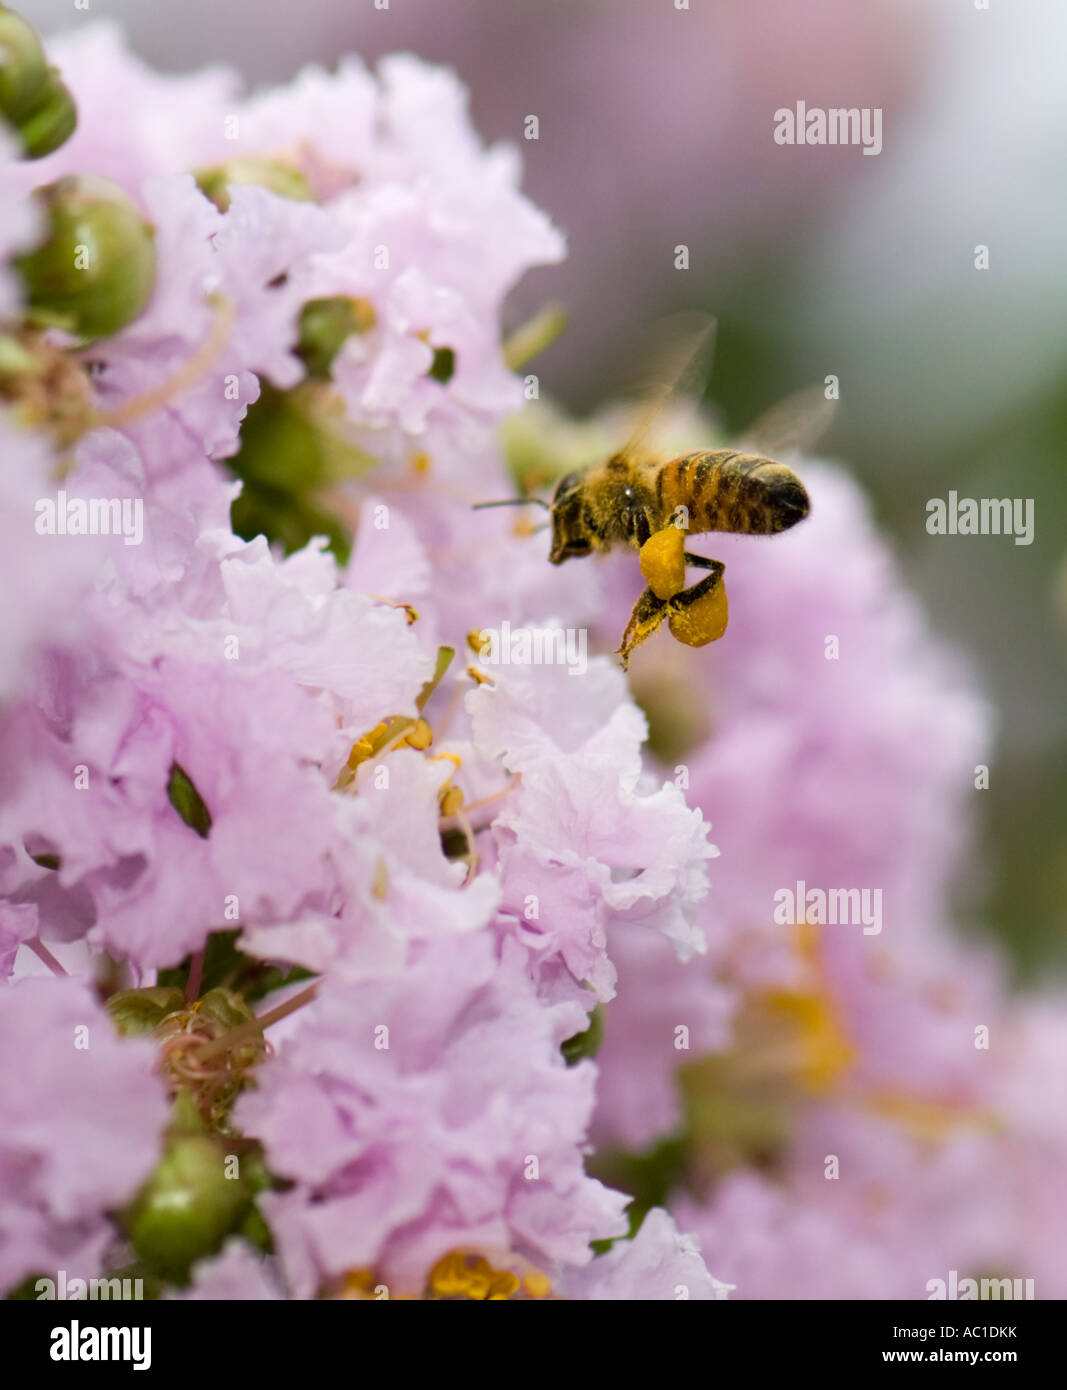 Honey Bee, Apis mellifera, Flying to an orchid colored crepe myrtle blossom. Oklahoma, USA. - Stock Image